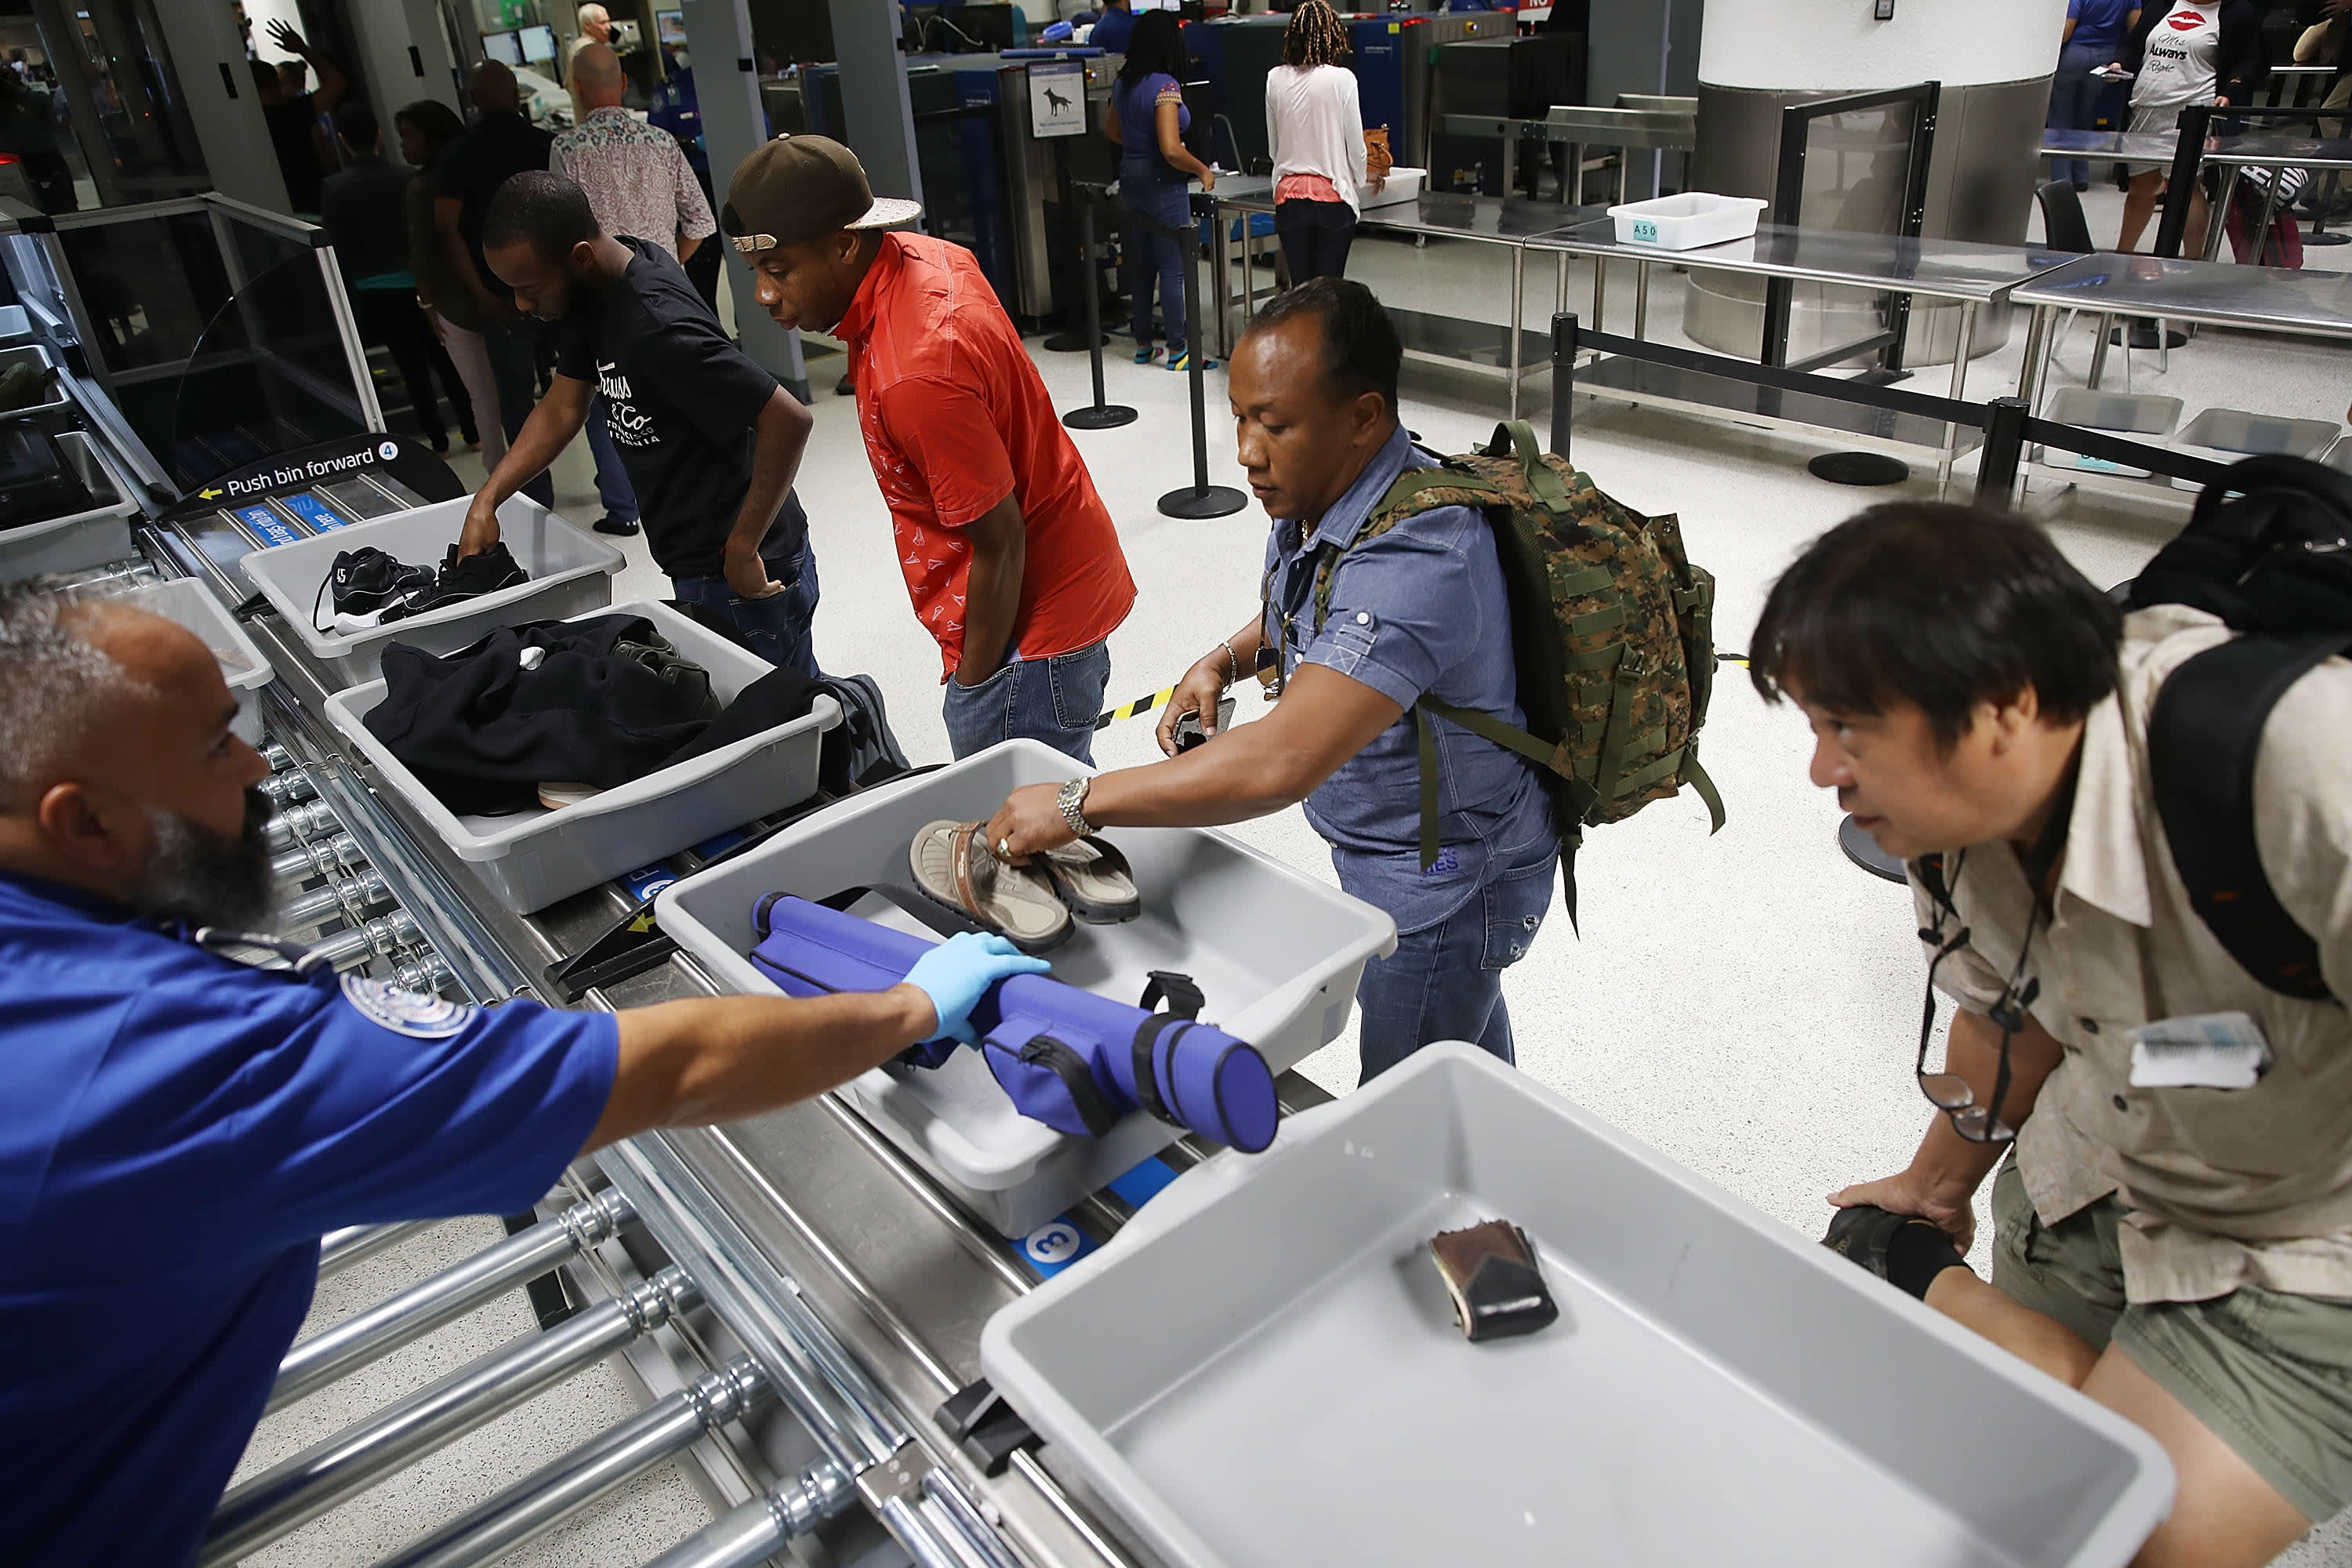 Here's how to avoid leaving things behind at airport security